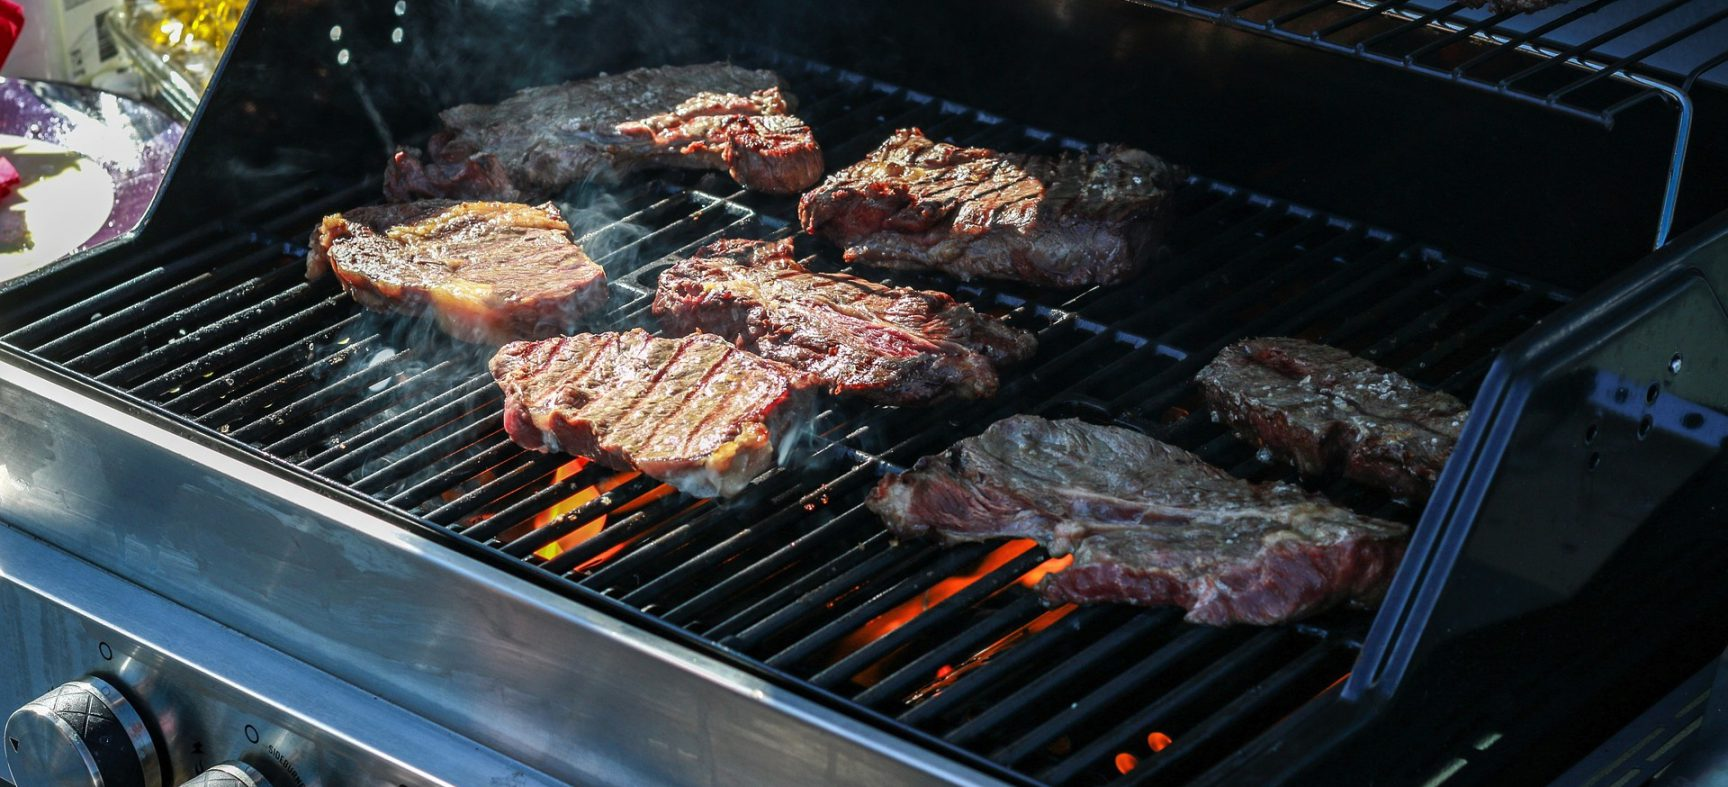 How to test your grill for gas leaks